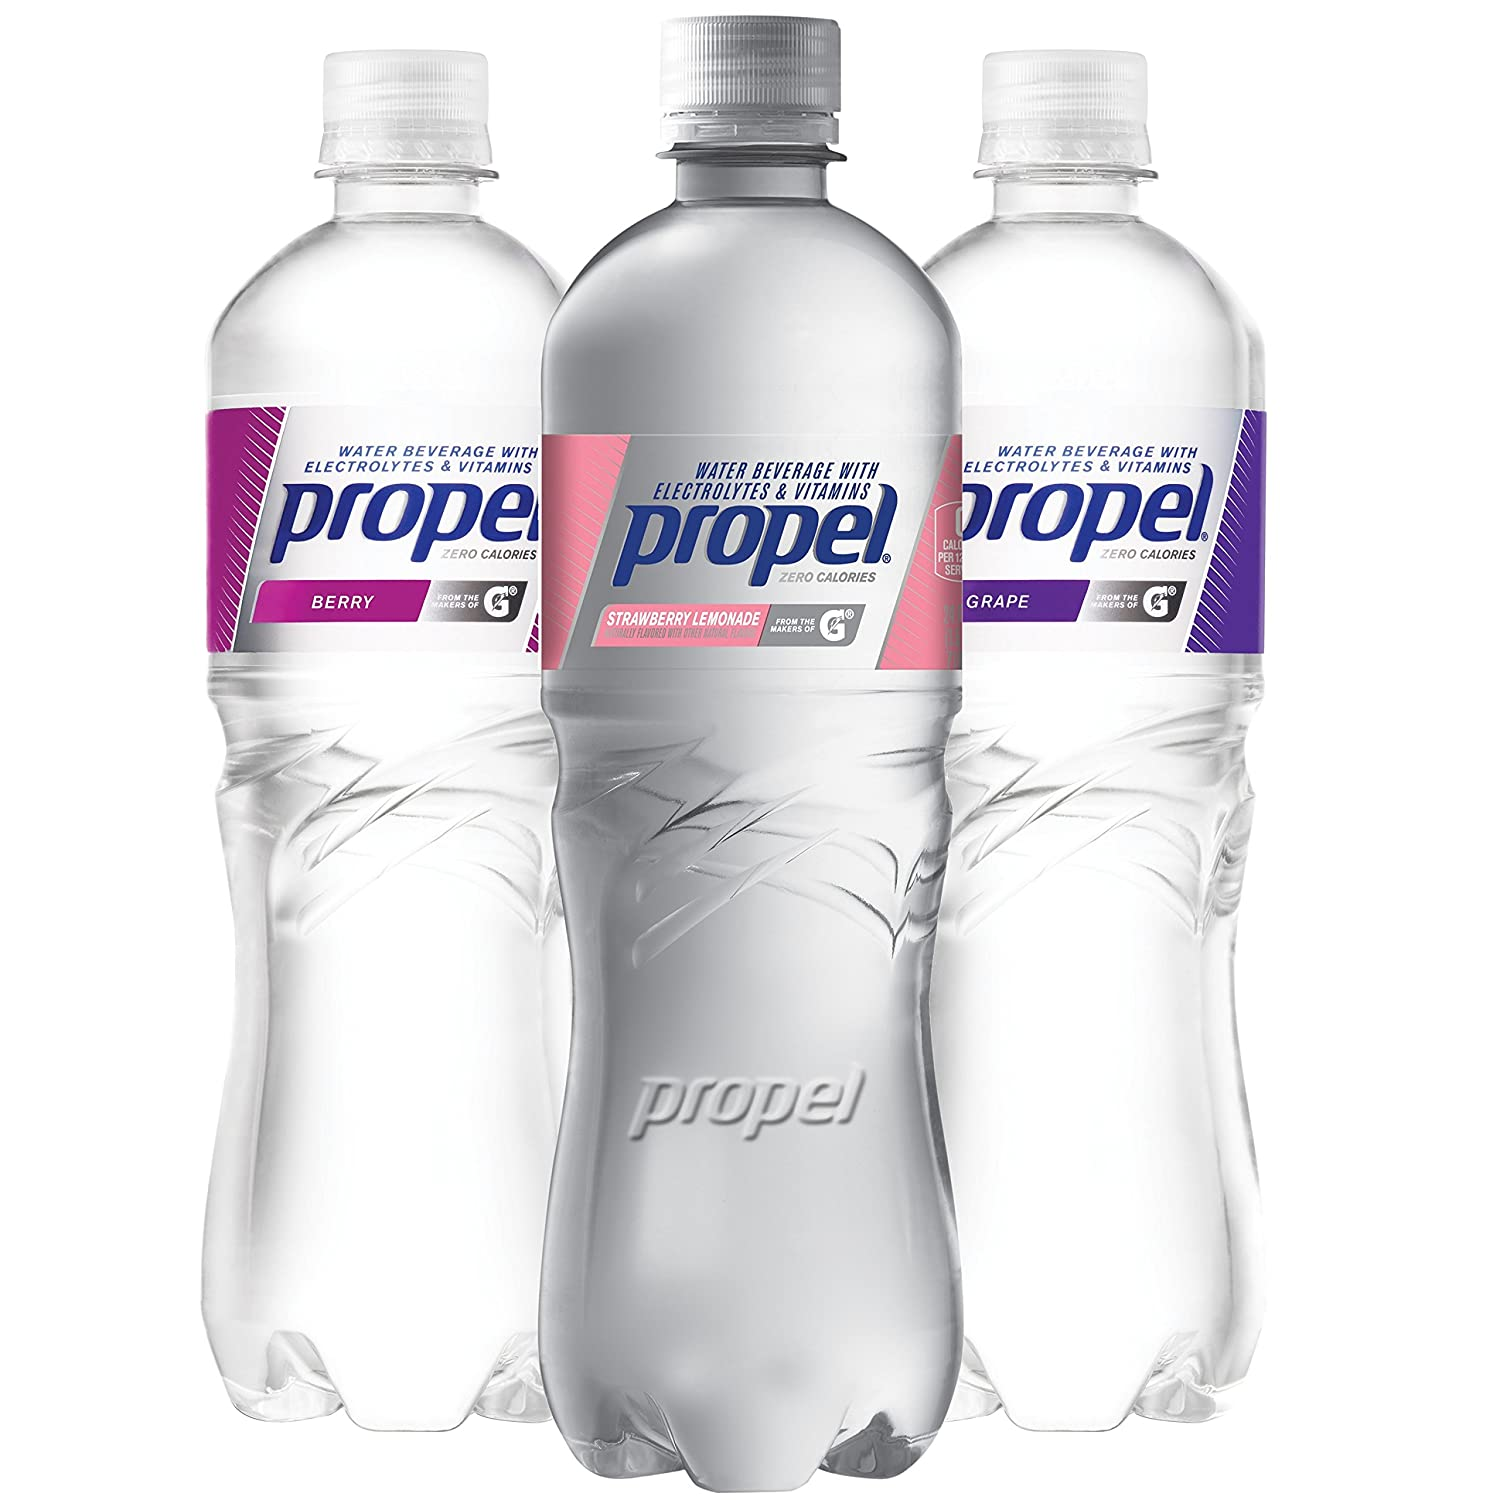 1dd8da050c Propel, 3 Flavor Variety Pack, Zero Calorie Water Beverage with  Electrolytes & Vitamins C&E, 24 Fl Oz (Pack of 12): Amazon.com: Grocery &  Gourmet Food